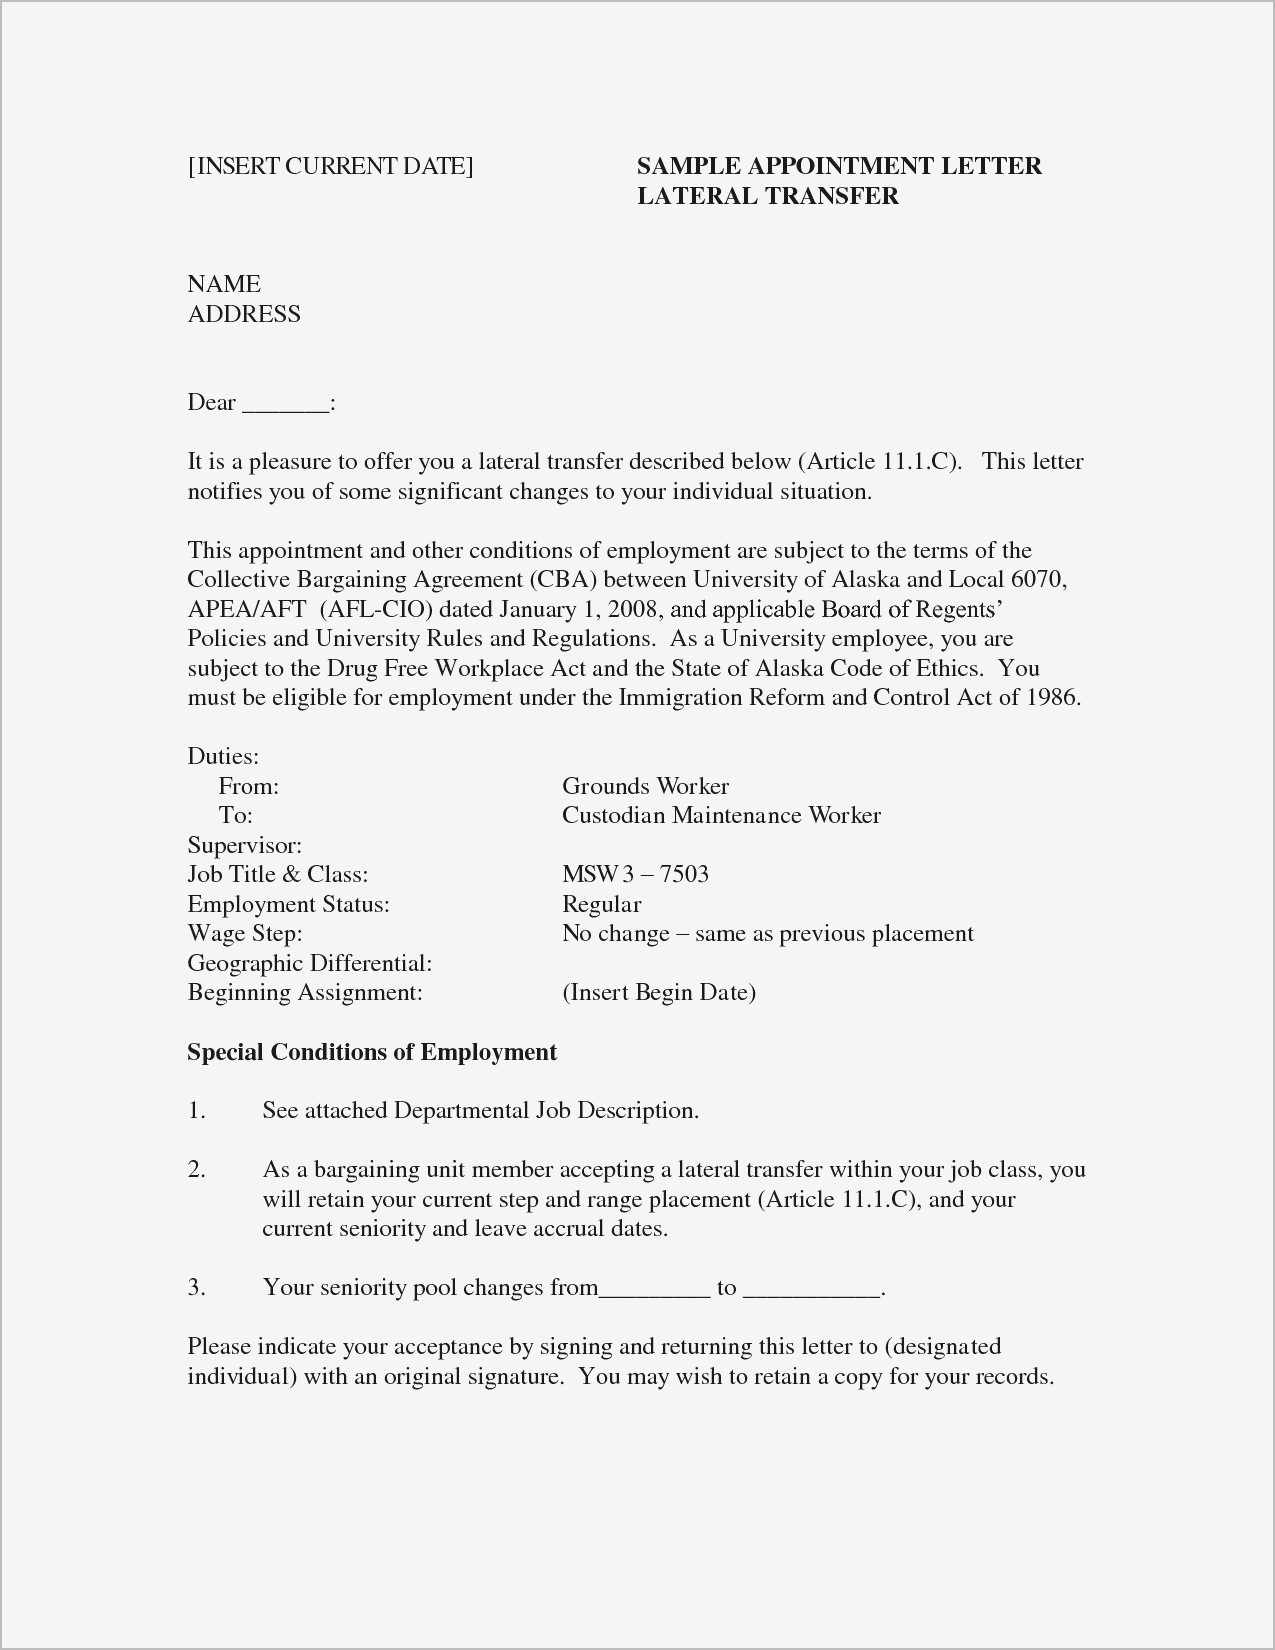 Graphic Design Cover Letter Template - Graphic Design Cover Letter Examples Samples